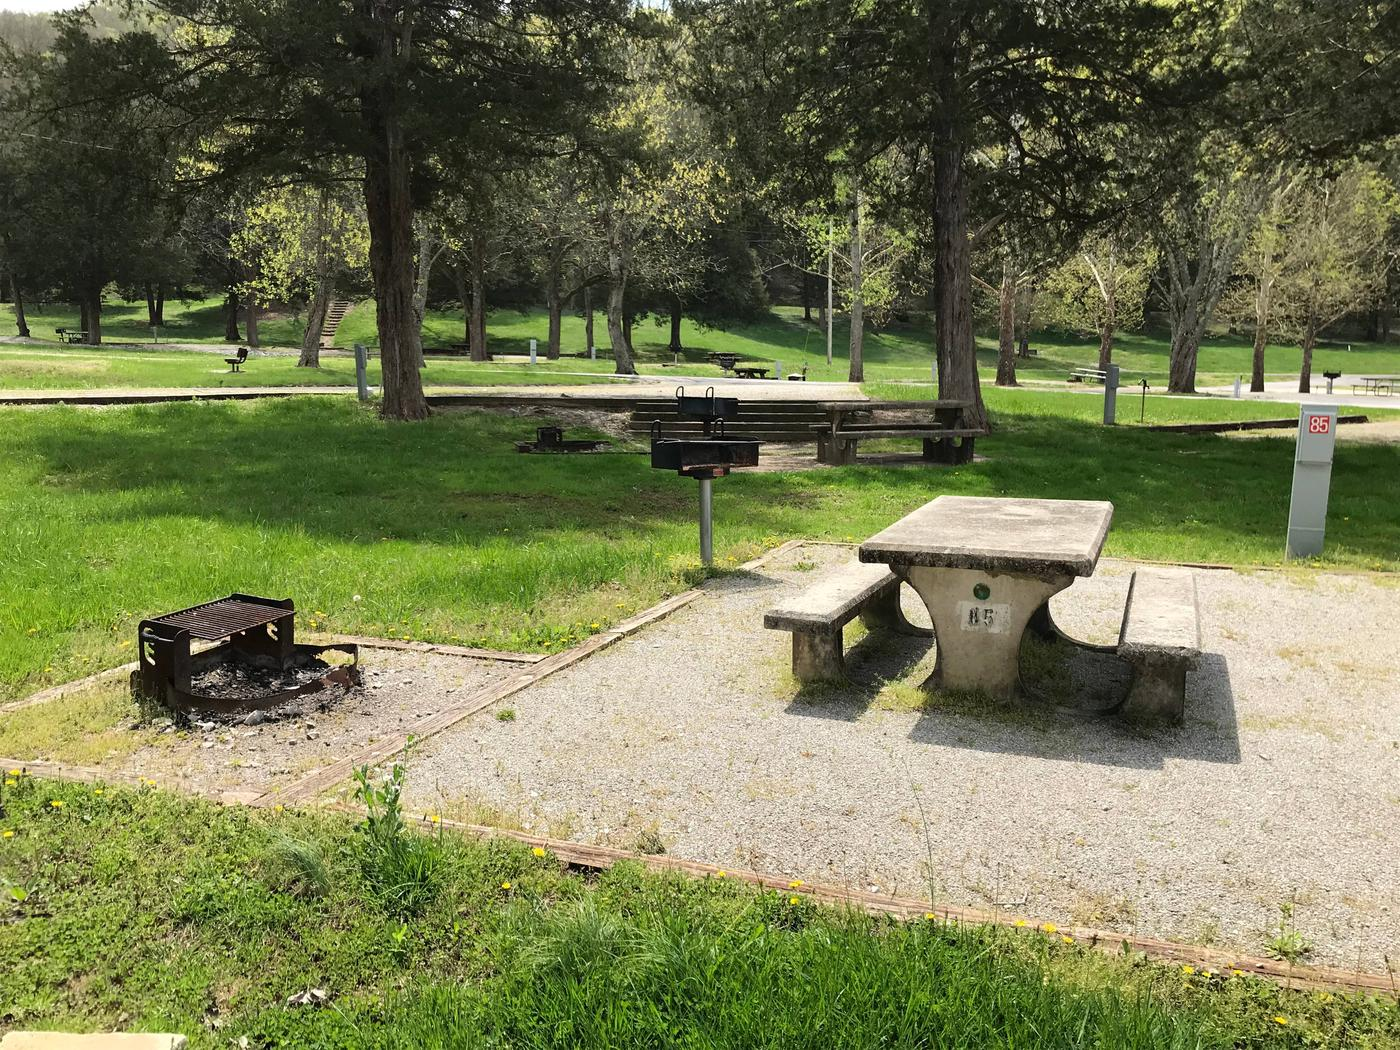 OBEY RIVER PARK SITE #85 CONCRETE TABLE AND FIRE RINGOBEY RIVER PARK SITE #85